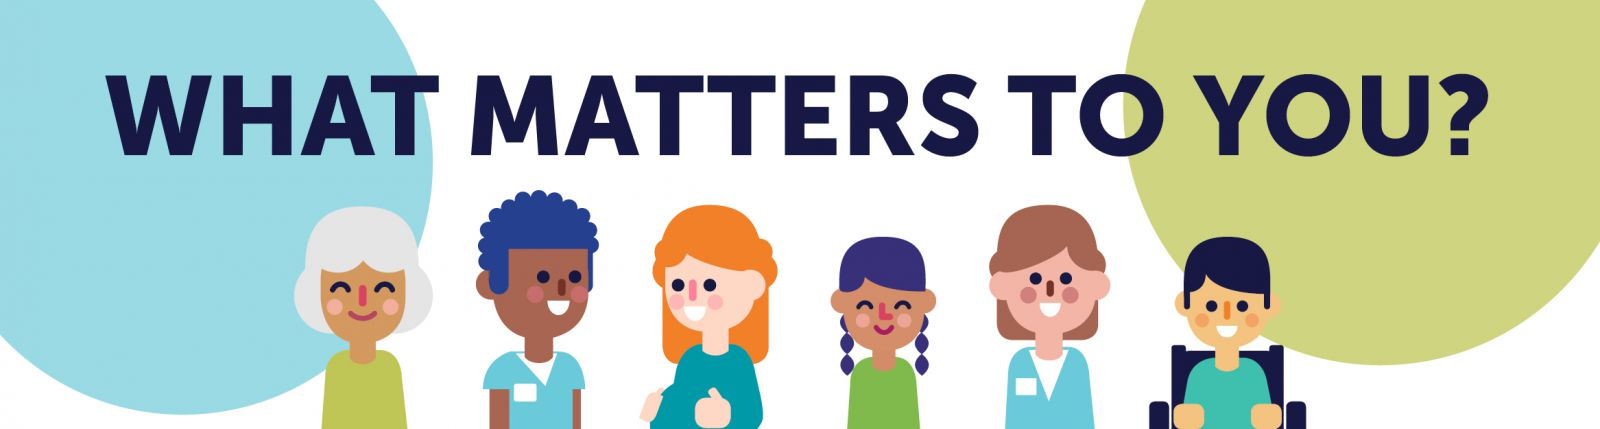 The words 'What Matters To You?' are above a row of cartoon smiling people. A blue circle and green circle are in the background.